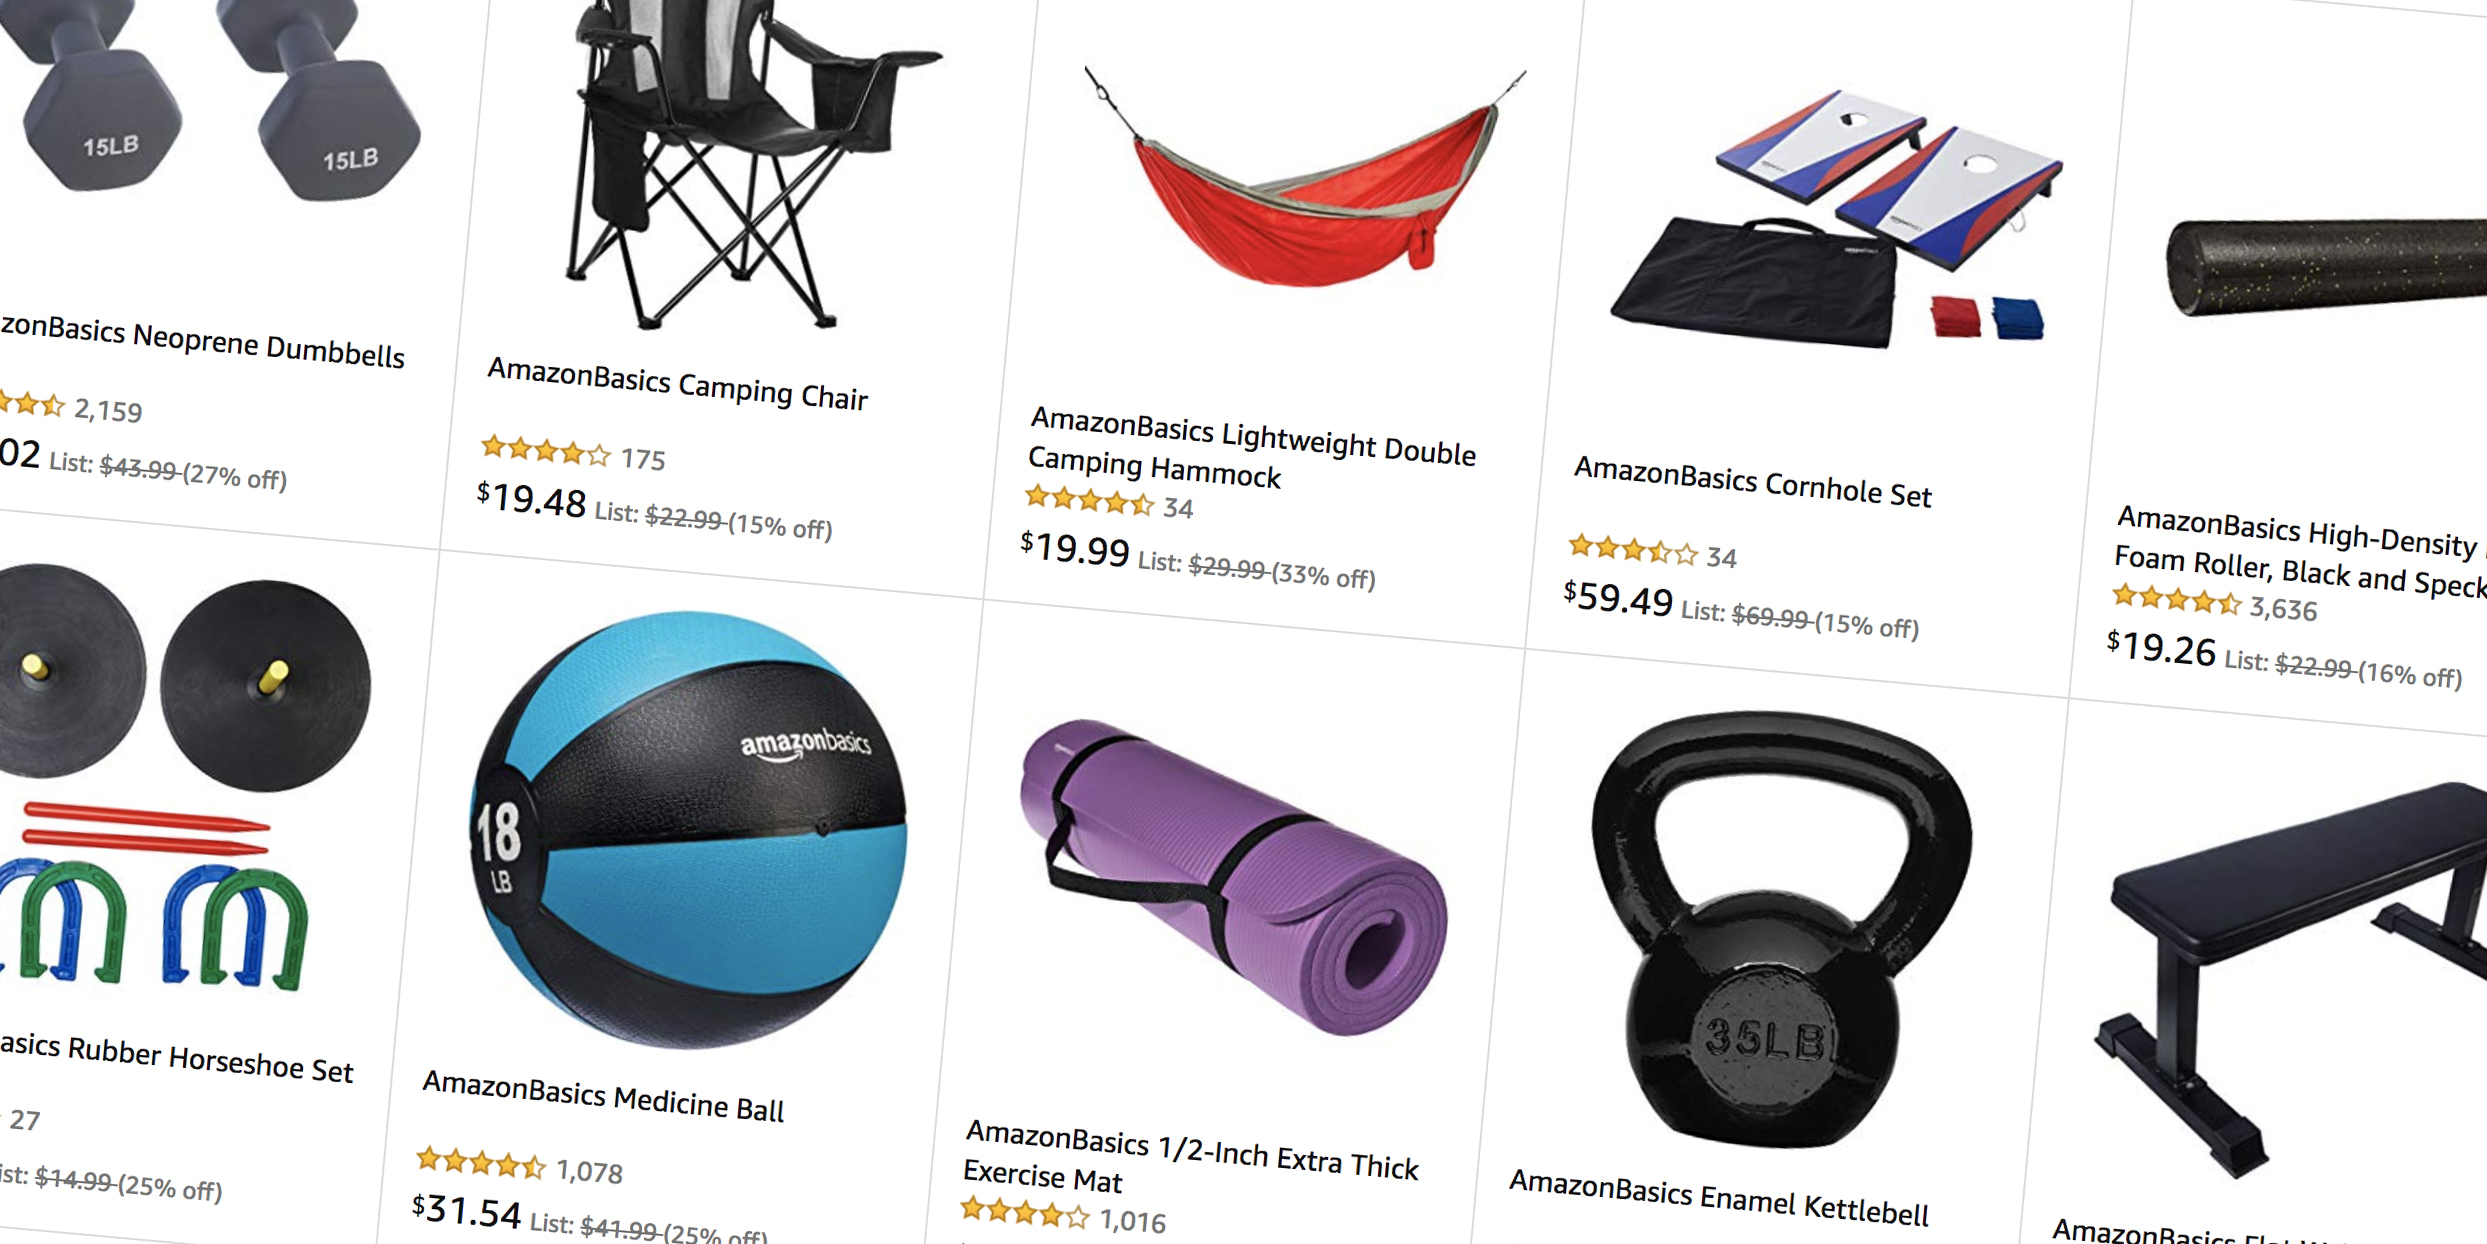 AmazonBasics sports equipment sale takes up to 30% off weights, yoga mats, exercise gear, more